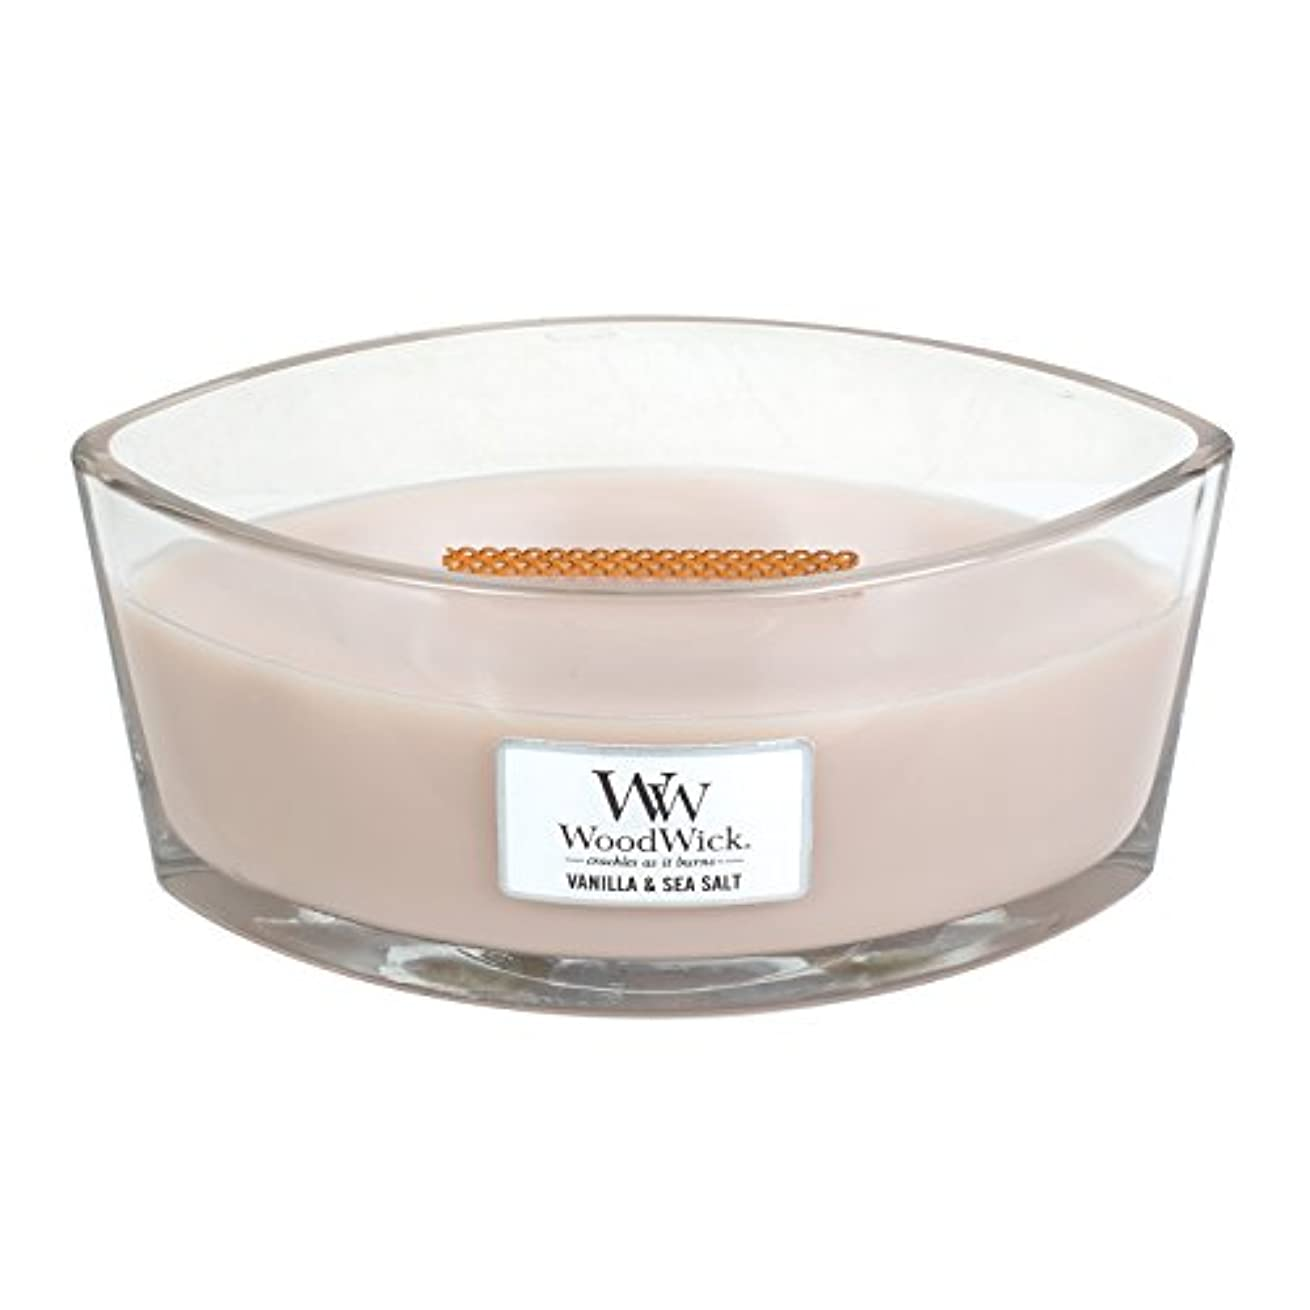 フォーマル絶滅させる湿気の多いWoodWick VANILLA & SEA SALT, Highly Scented Candle, Ellipse Glass Jar with Original HearthWick Flame, Large 18cm...